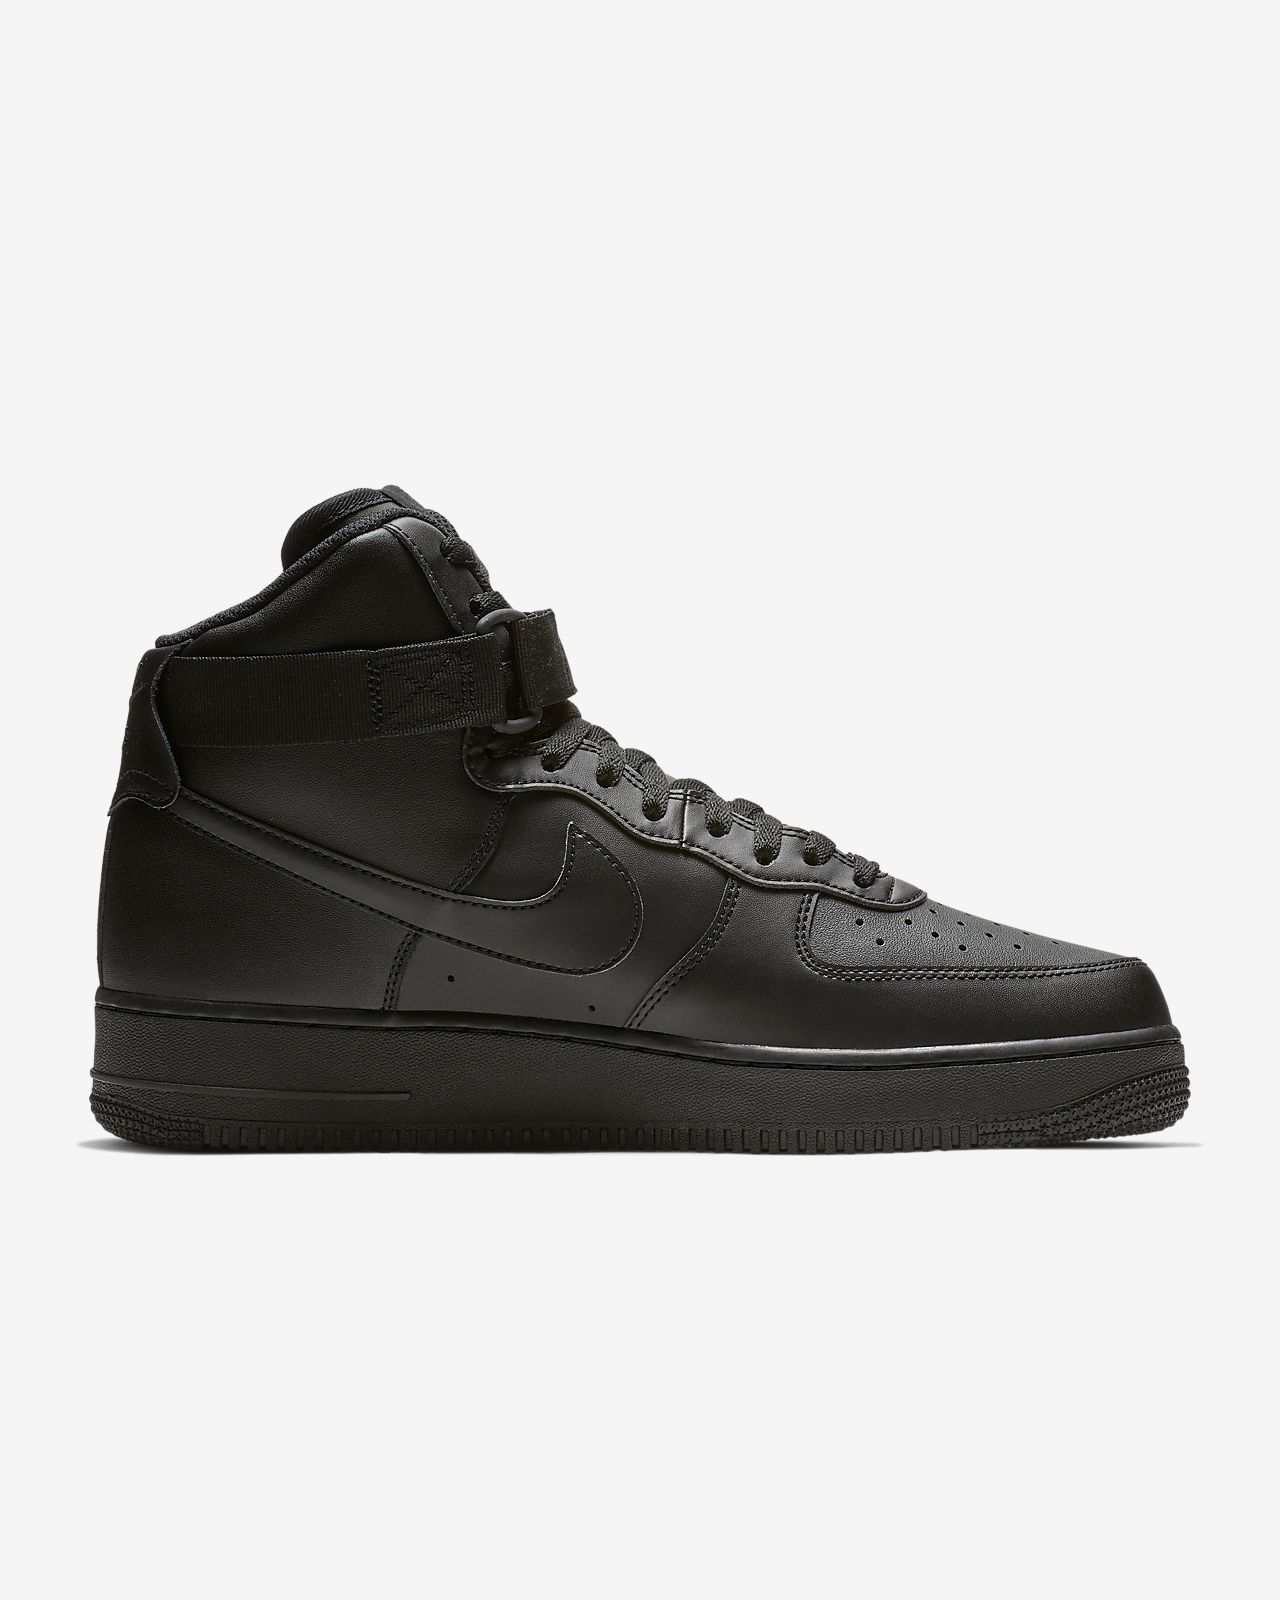 bde19127c7 Nike Air Force 1 High 07 Men's Shoe. Nike.com